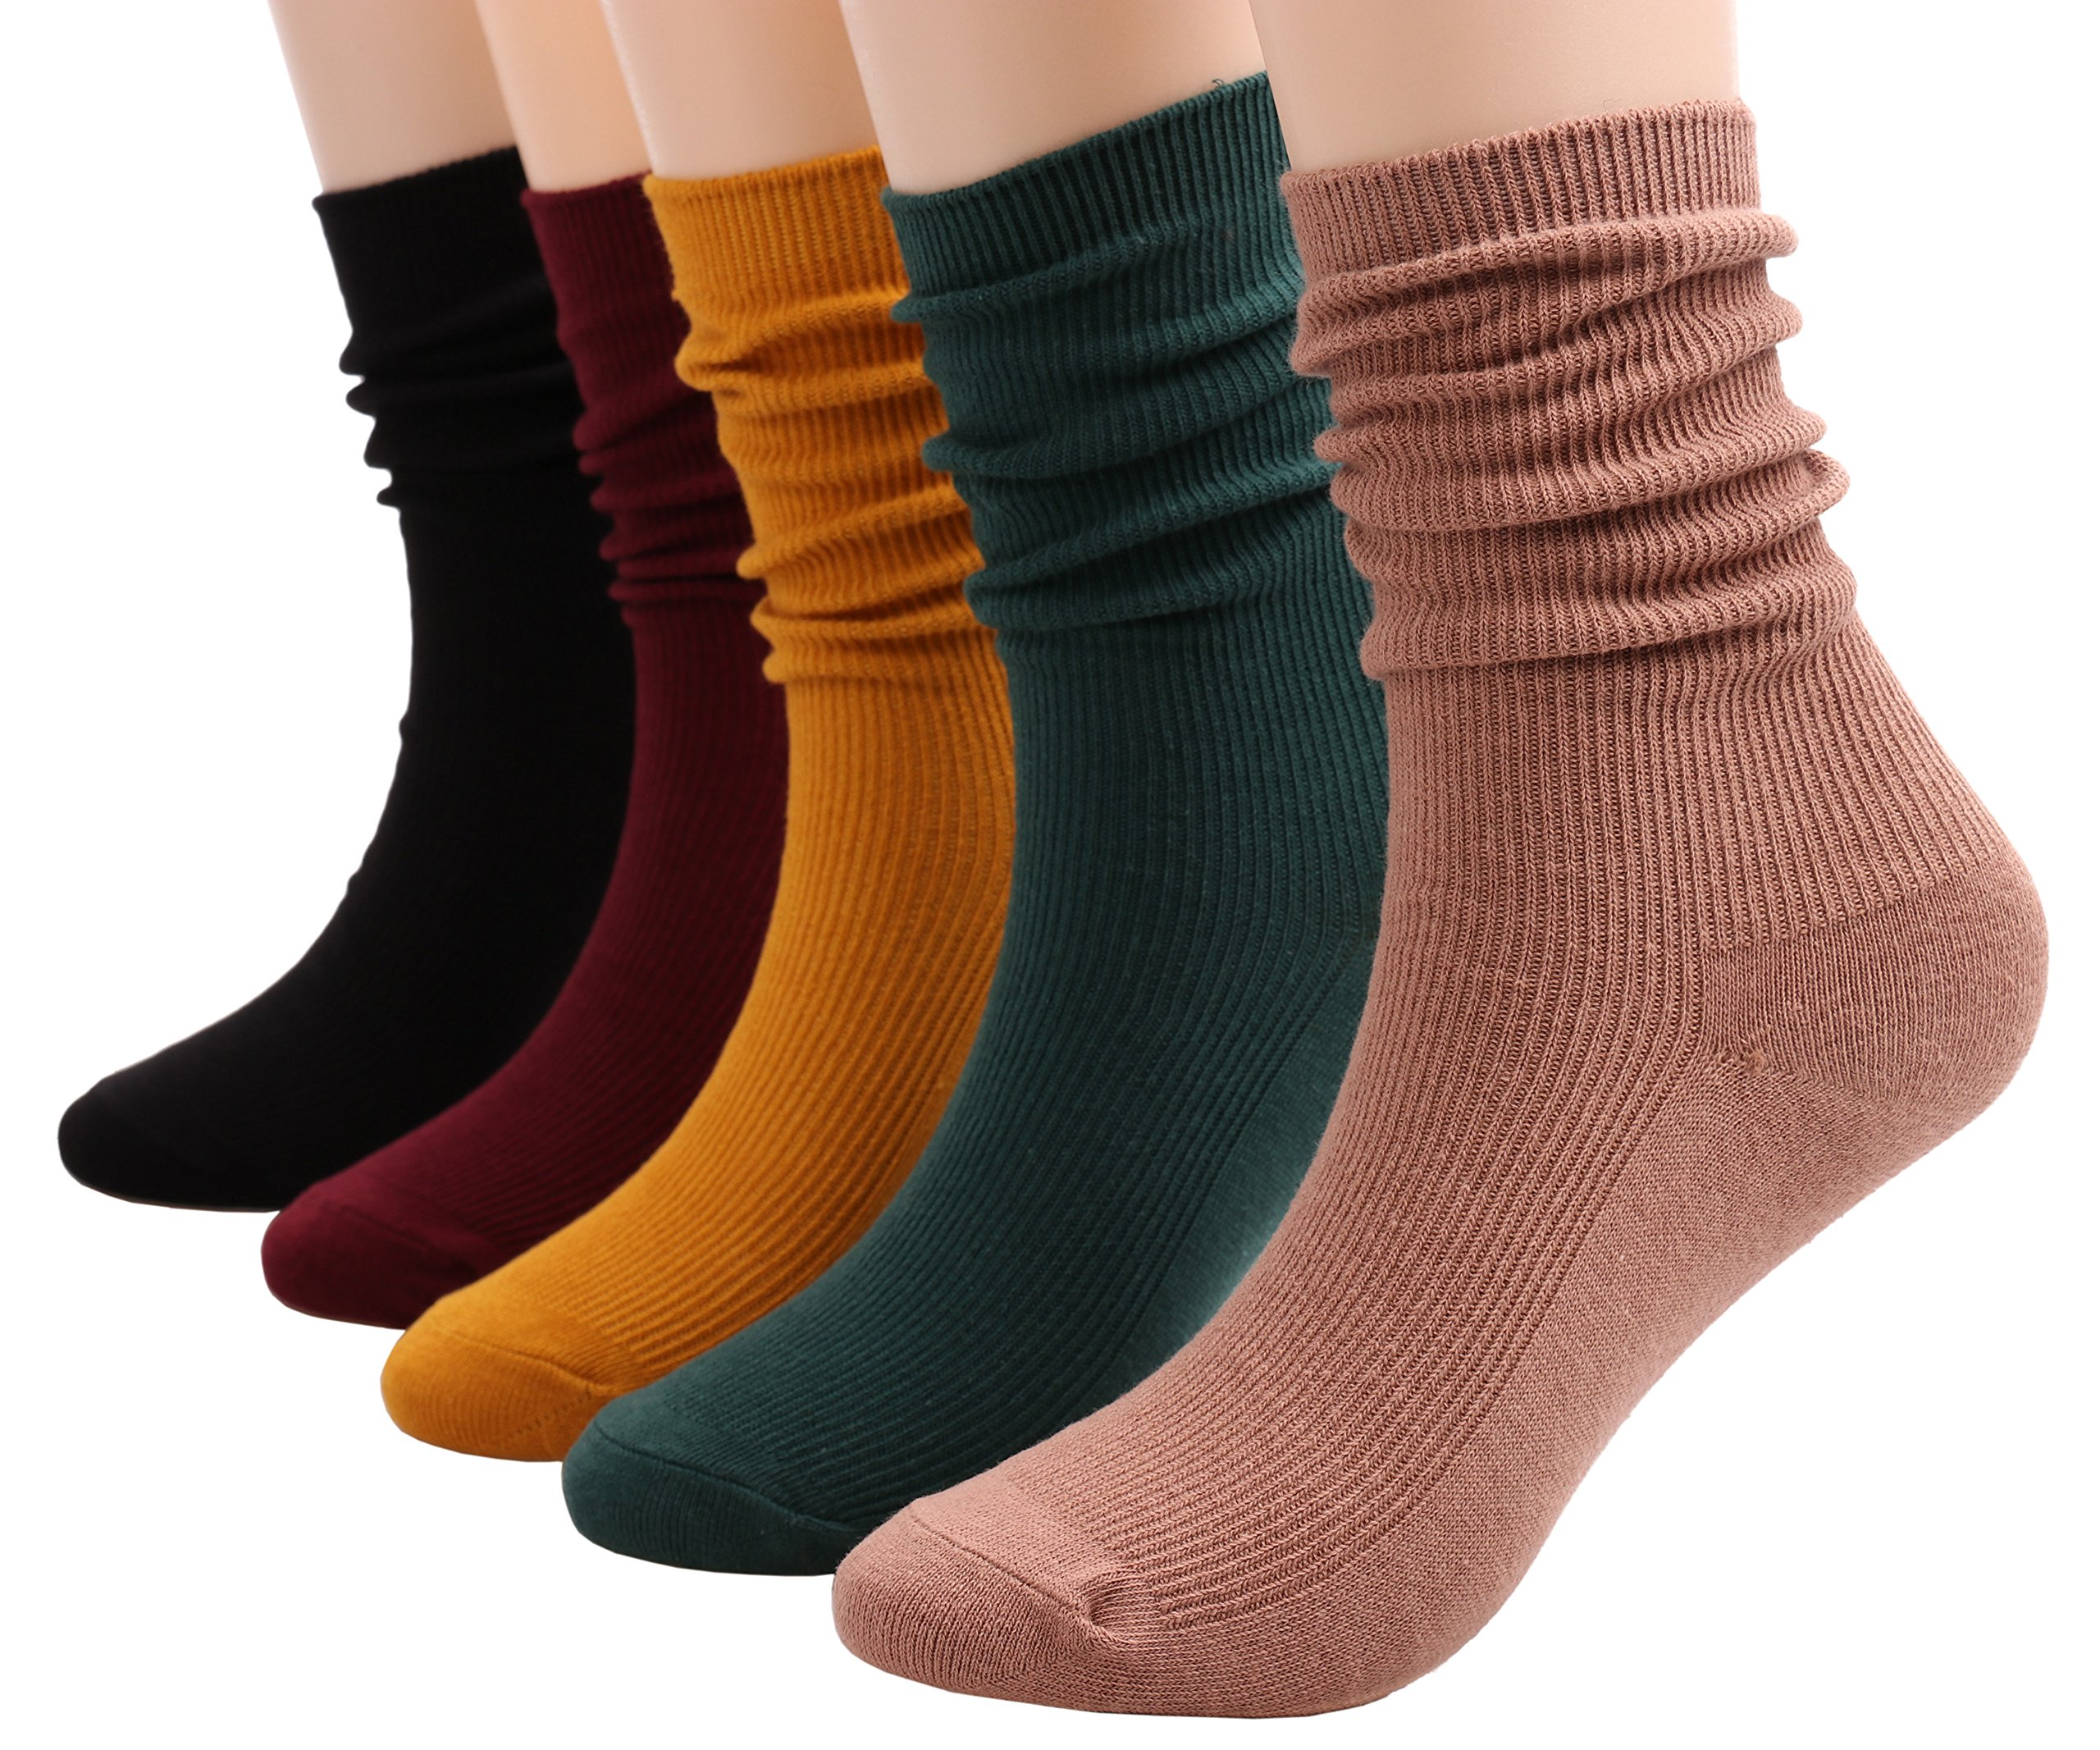 5 Pairs Womens Crew Socks All Season Soft Slouch Knit Cotton Socks Solid Color,5-10 W81